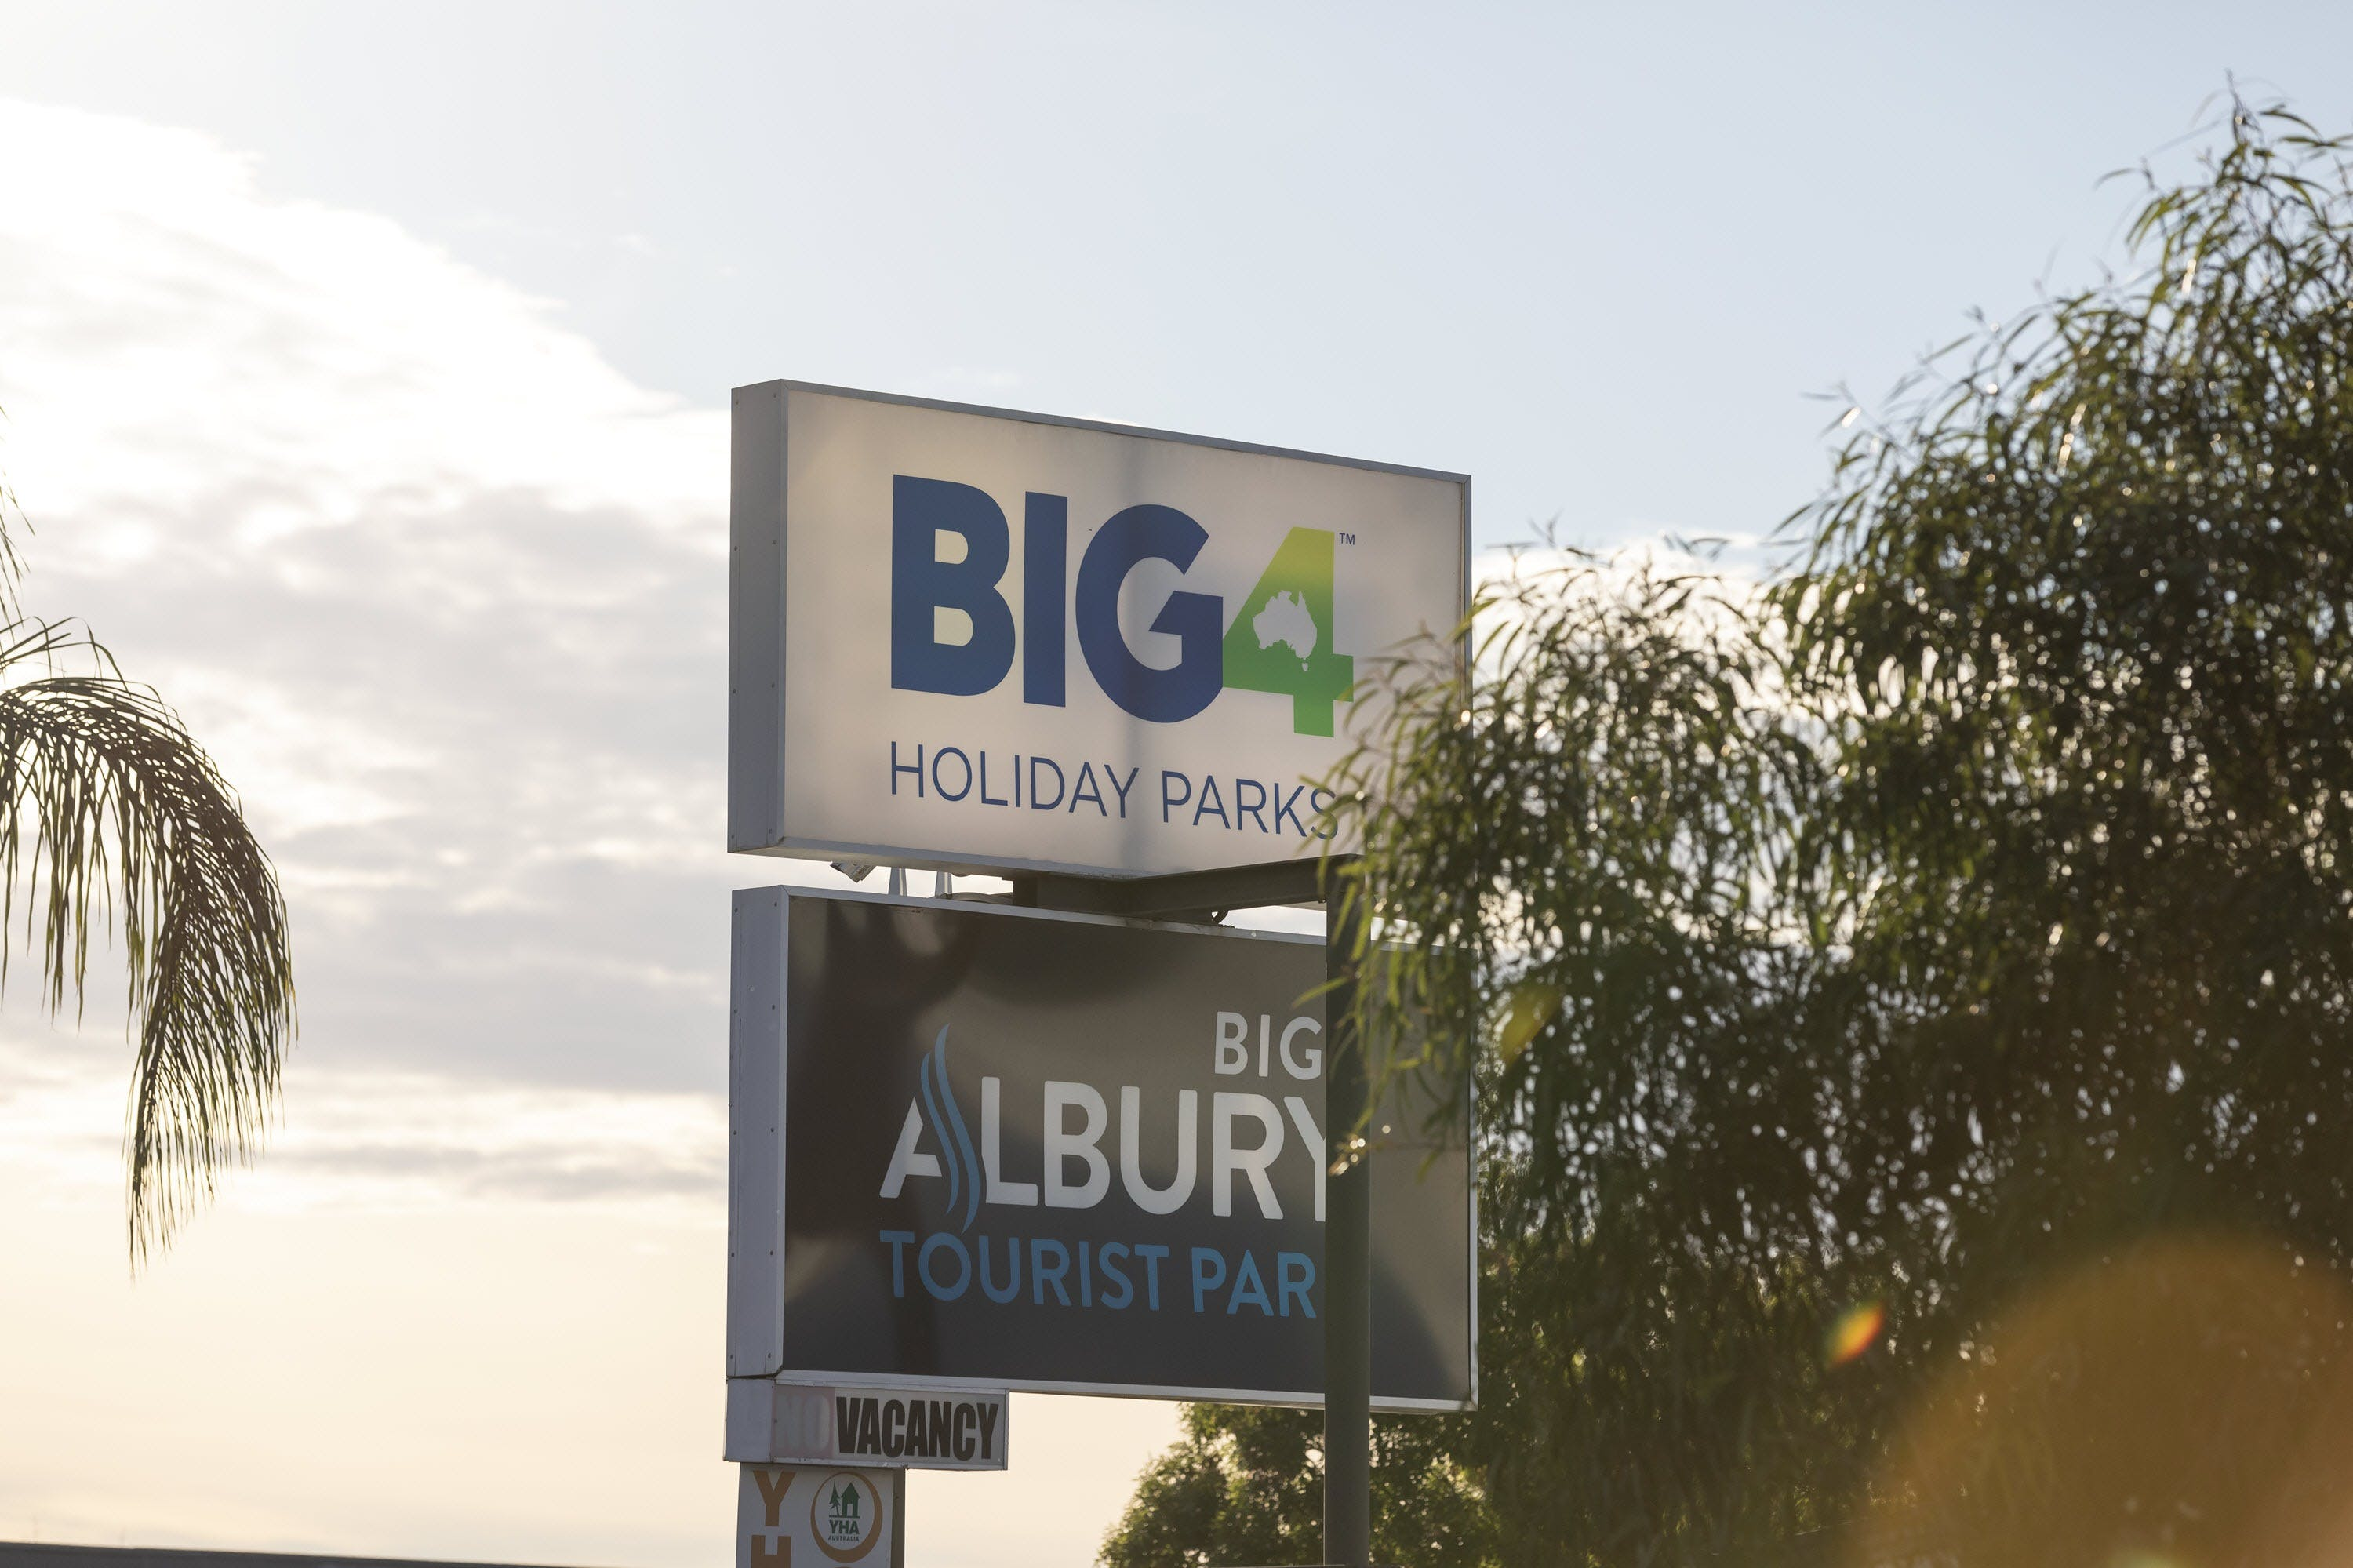 BIG4 Albury Tourist Park - Perisher Accommodation